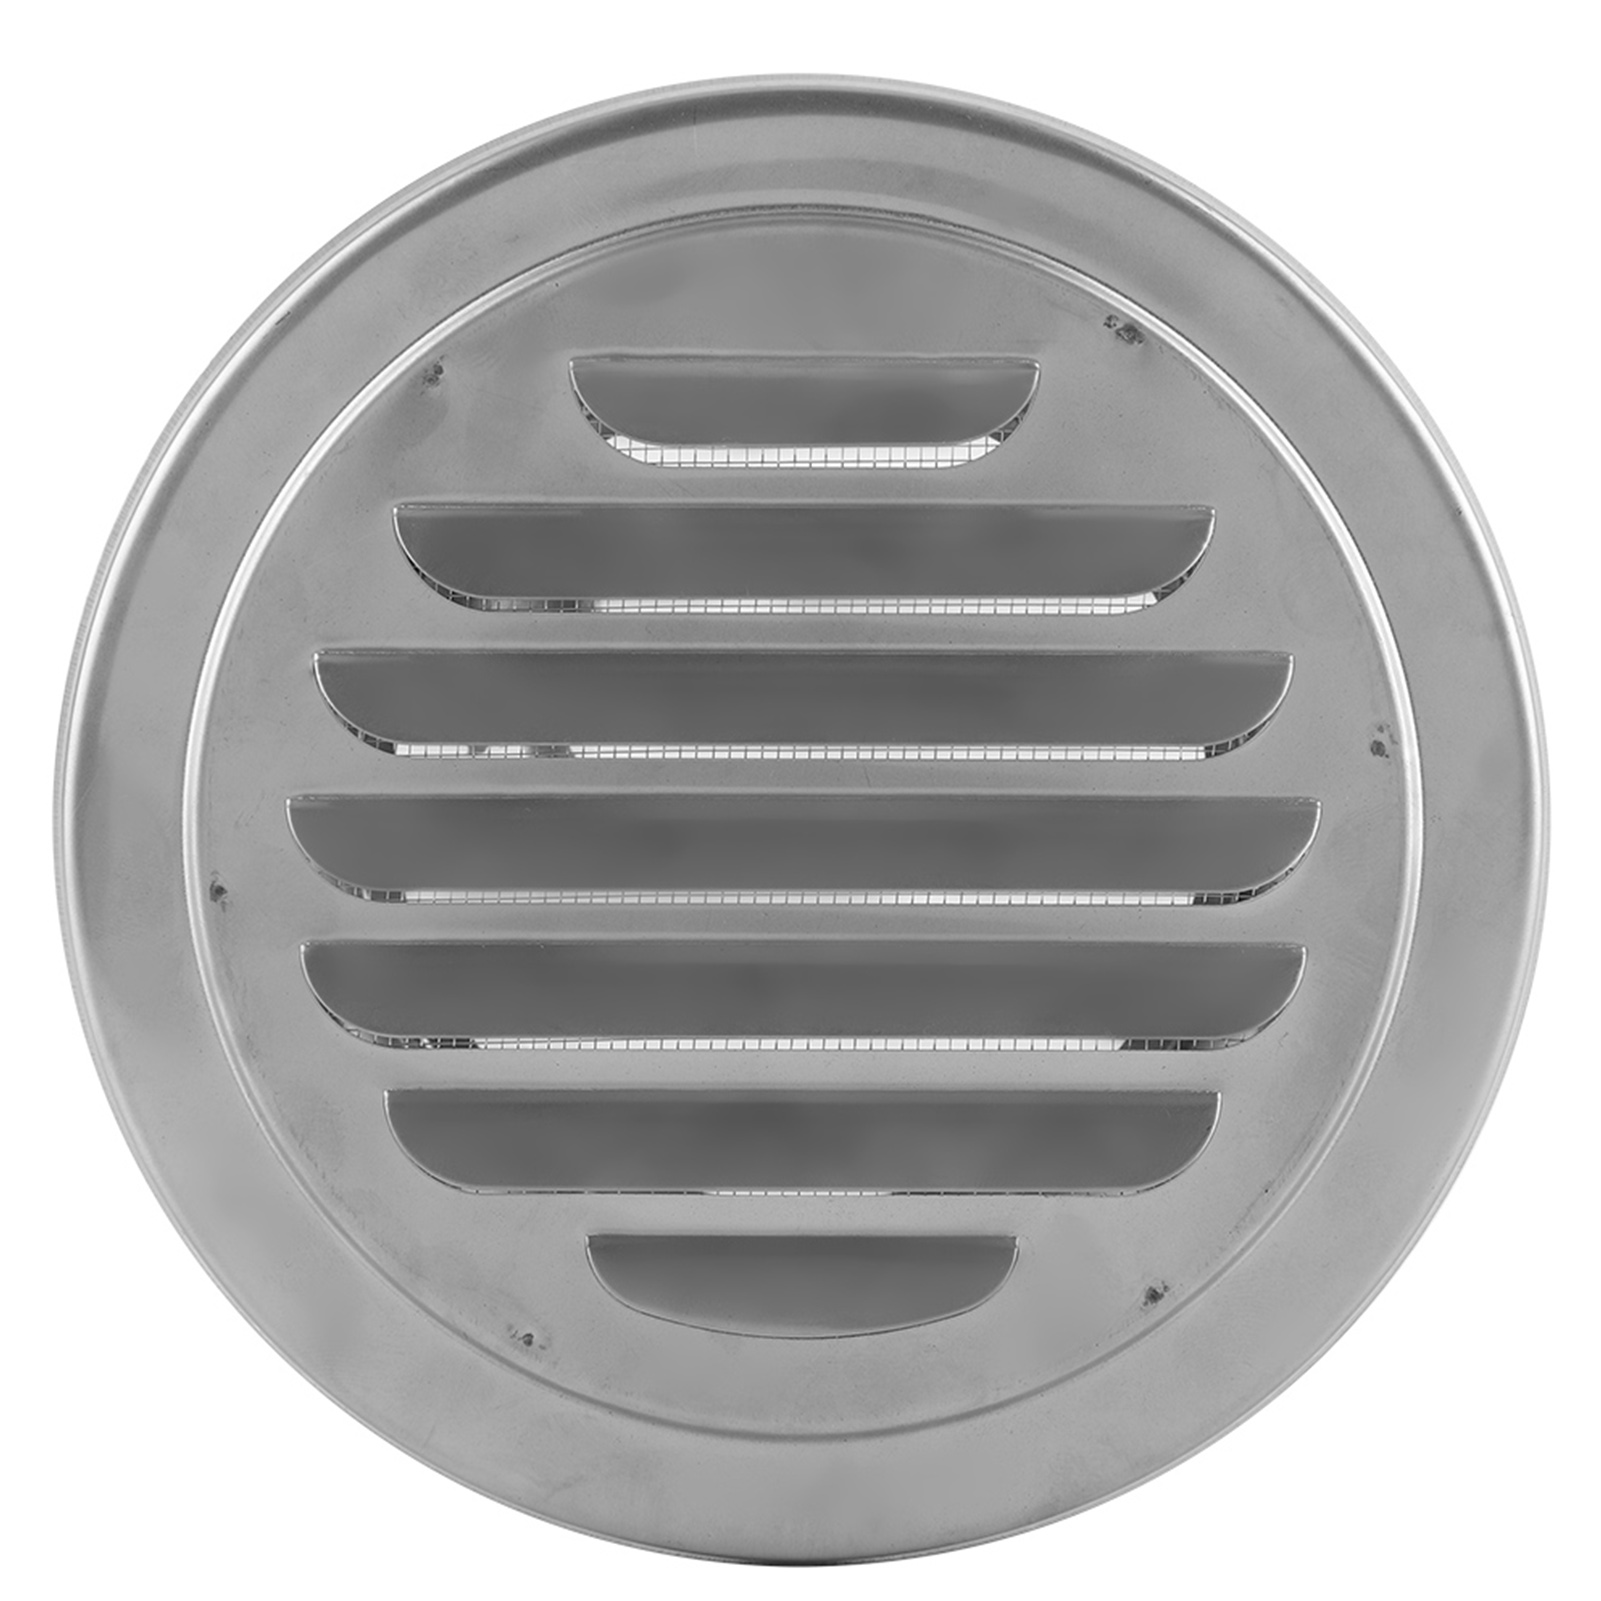 Stainless-Steel-Wall-Air-Vent-Ducting-Ventilation-Exhaust-Grille-Cover-Outlet-HG thumbnail 15